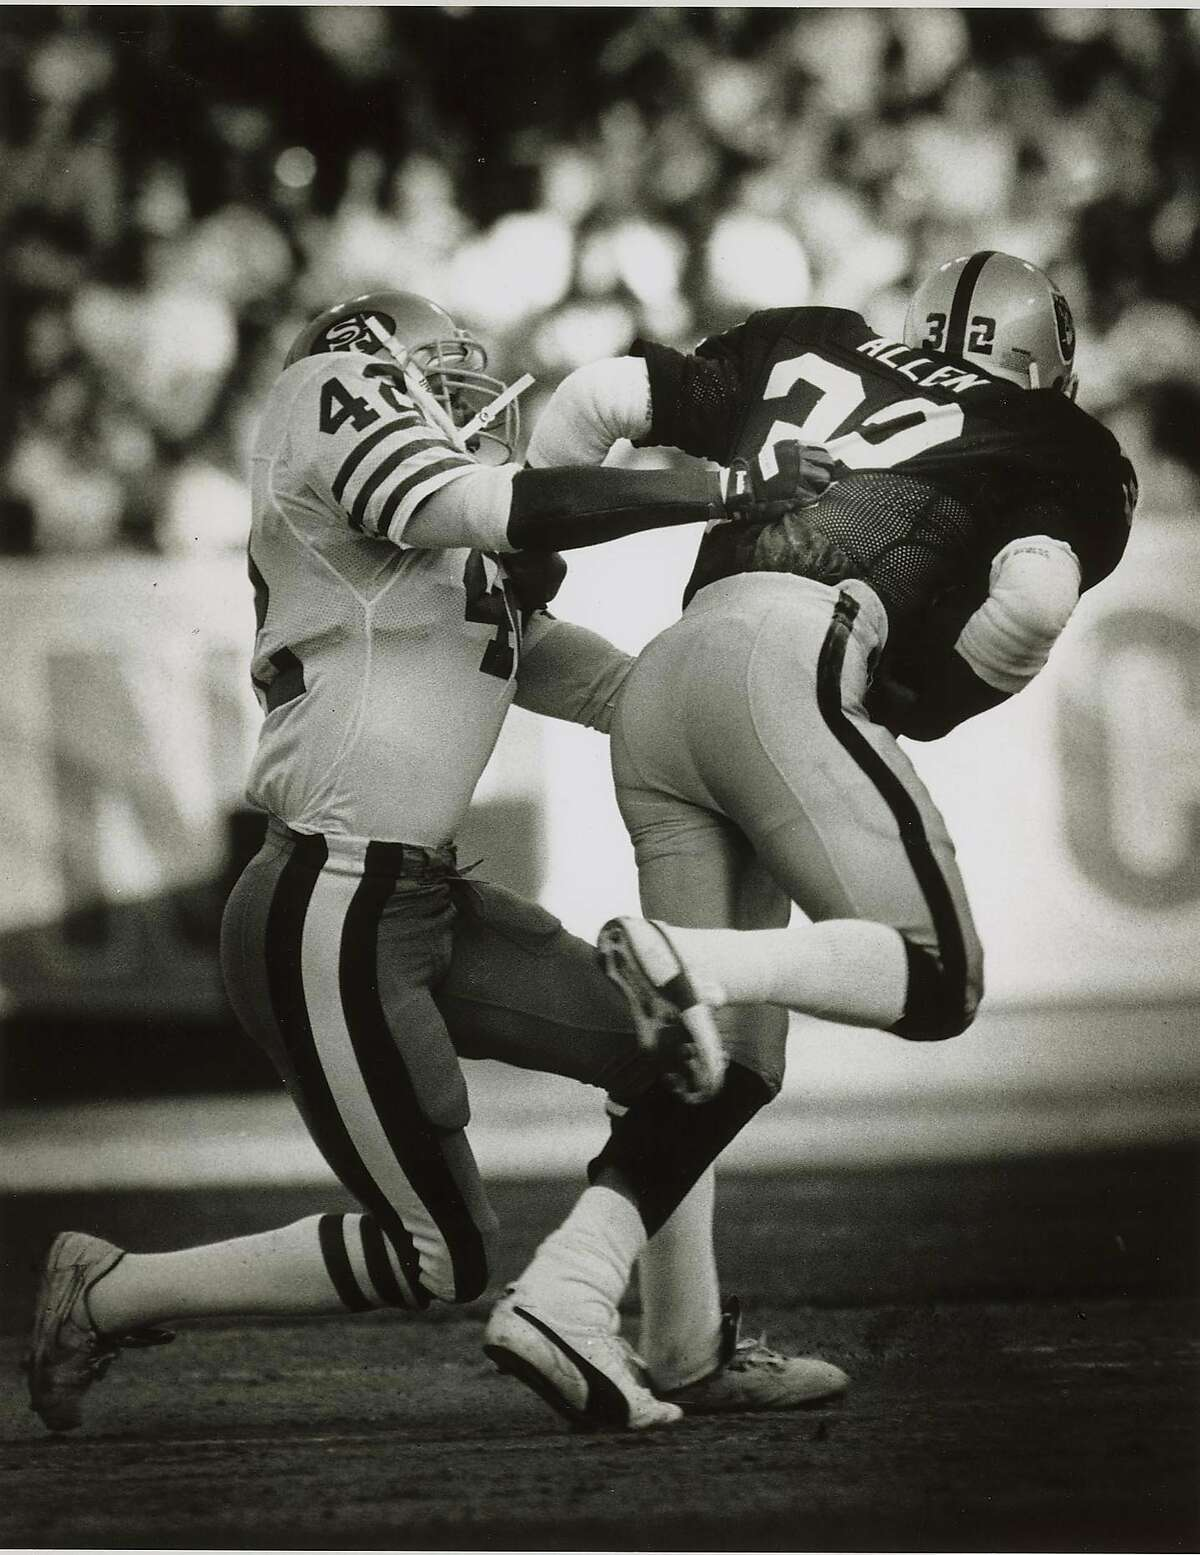 8/11/1990 - Ronnie Lott tackles Marcus Allen in the 1st quarter of game against Oakland Raiders.